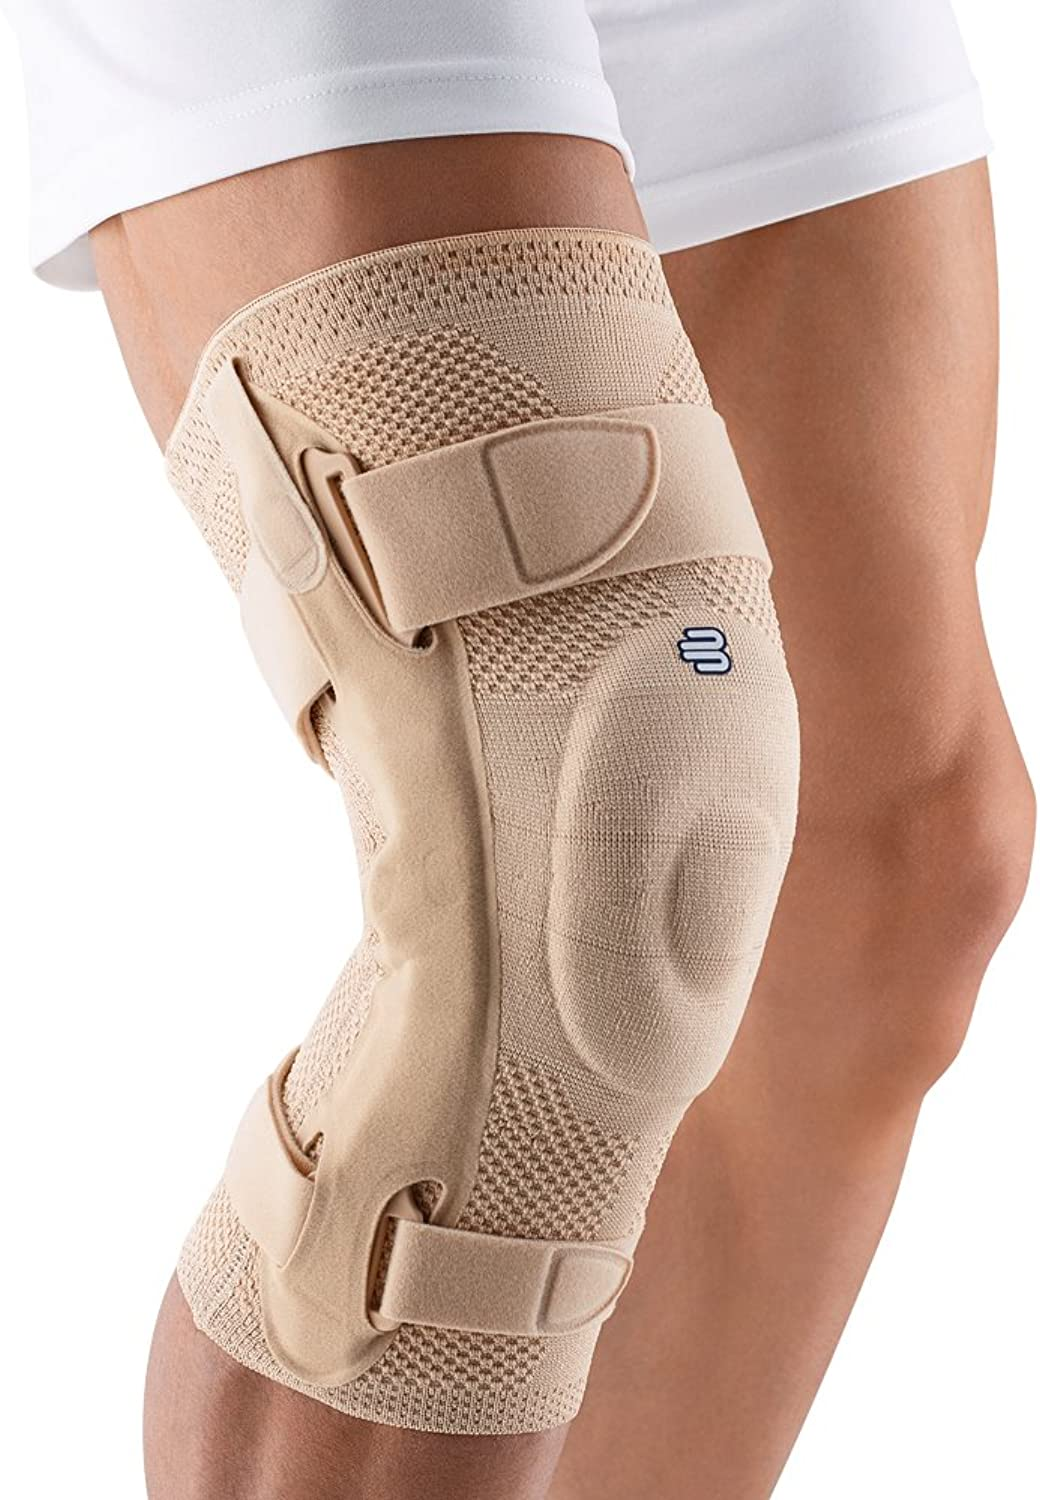 Bauerfeind  GenuTrain S  Knee Support  Extra Stability to Keep The Knee in Proper Position  Left Knee  Size 6  color Nature